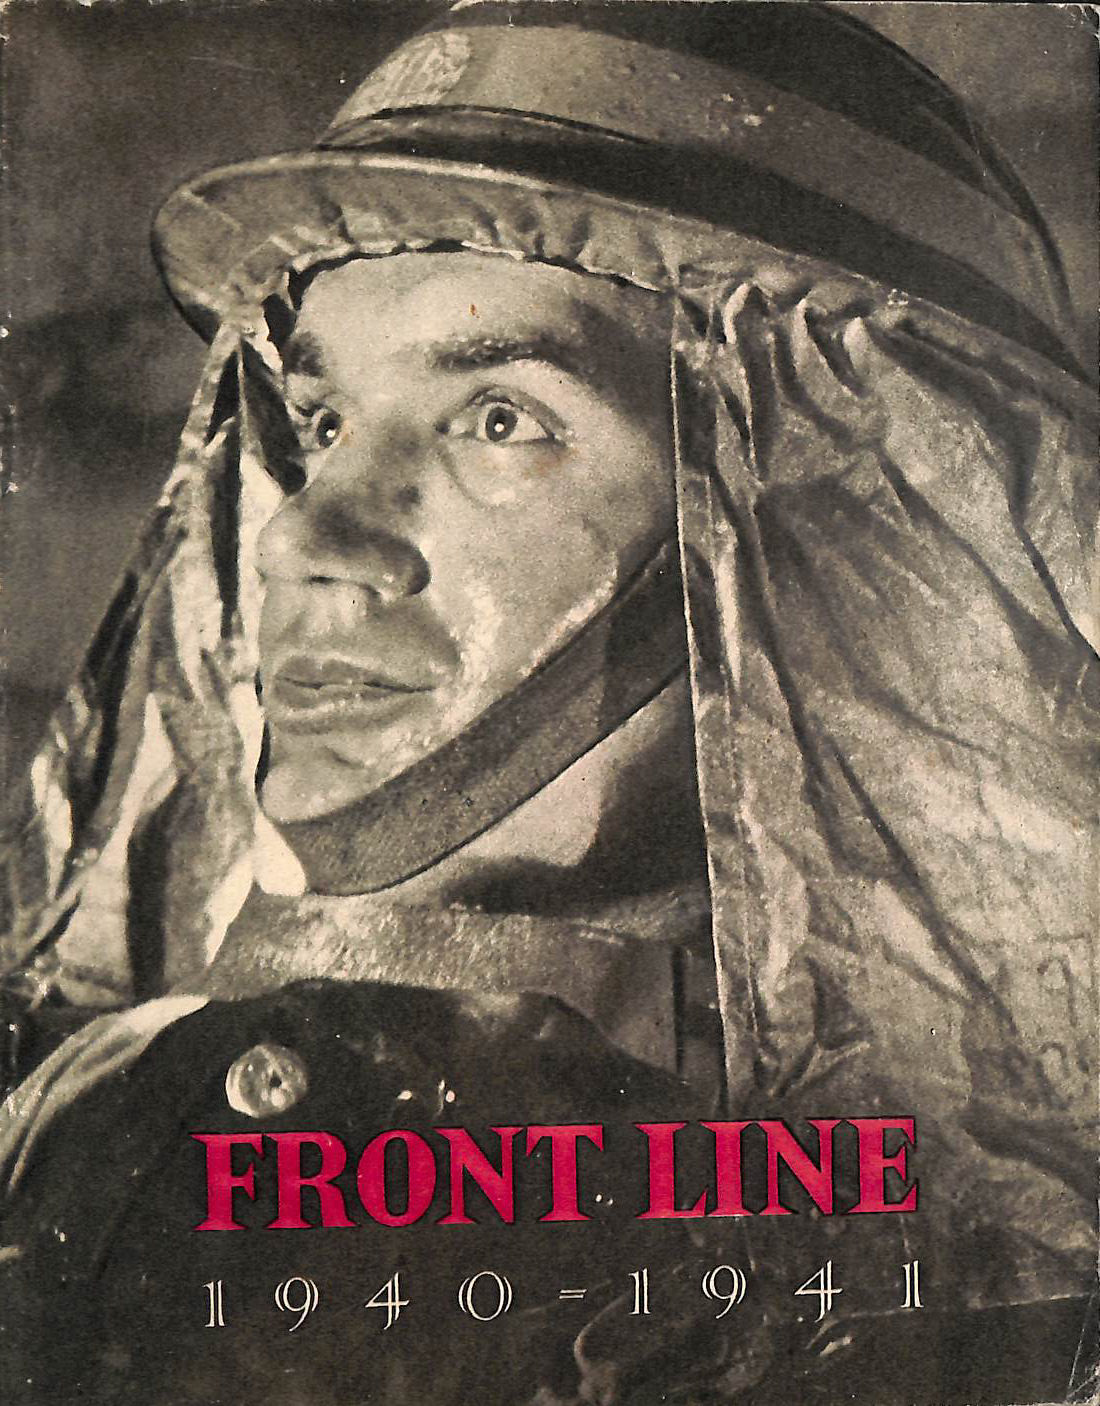 Front Line 1940 -1941 the Official Story of the civil Defence of Britain, HMSO